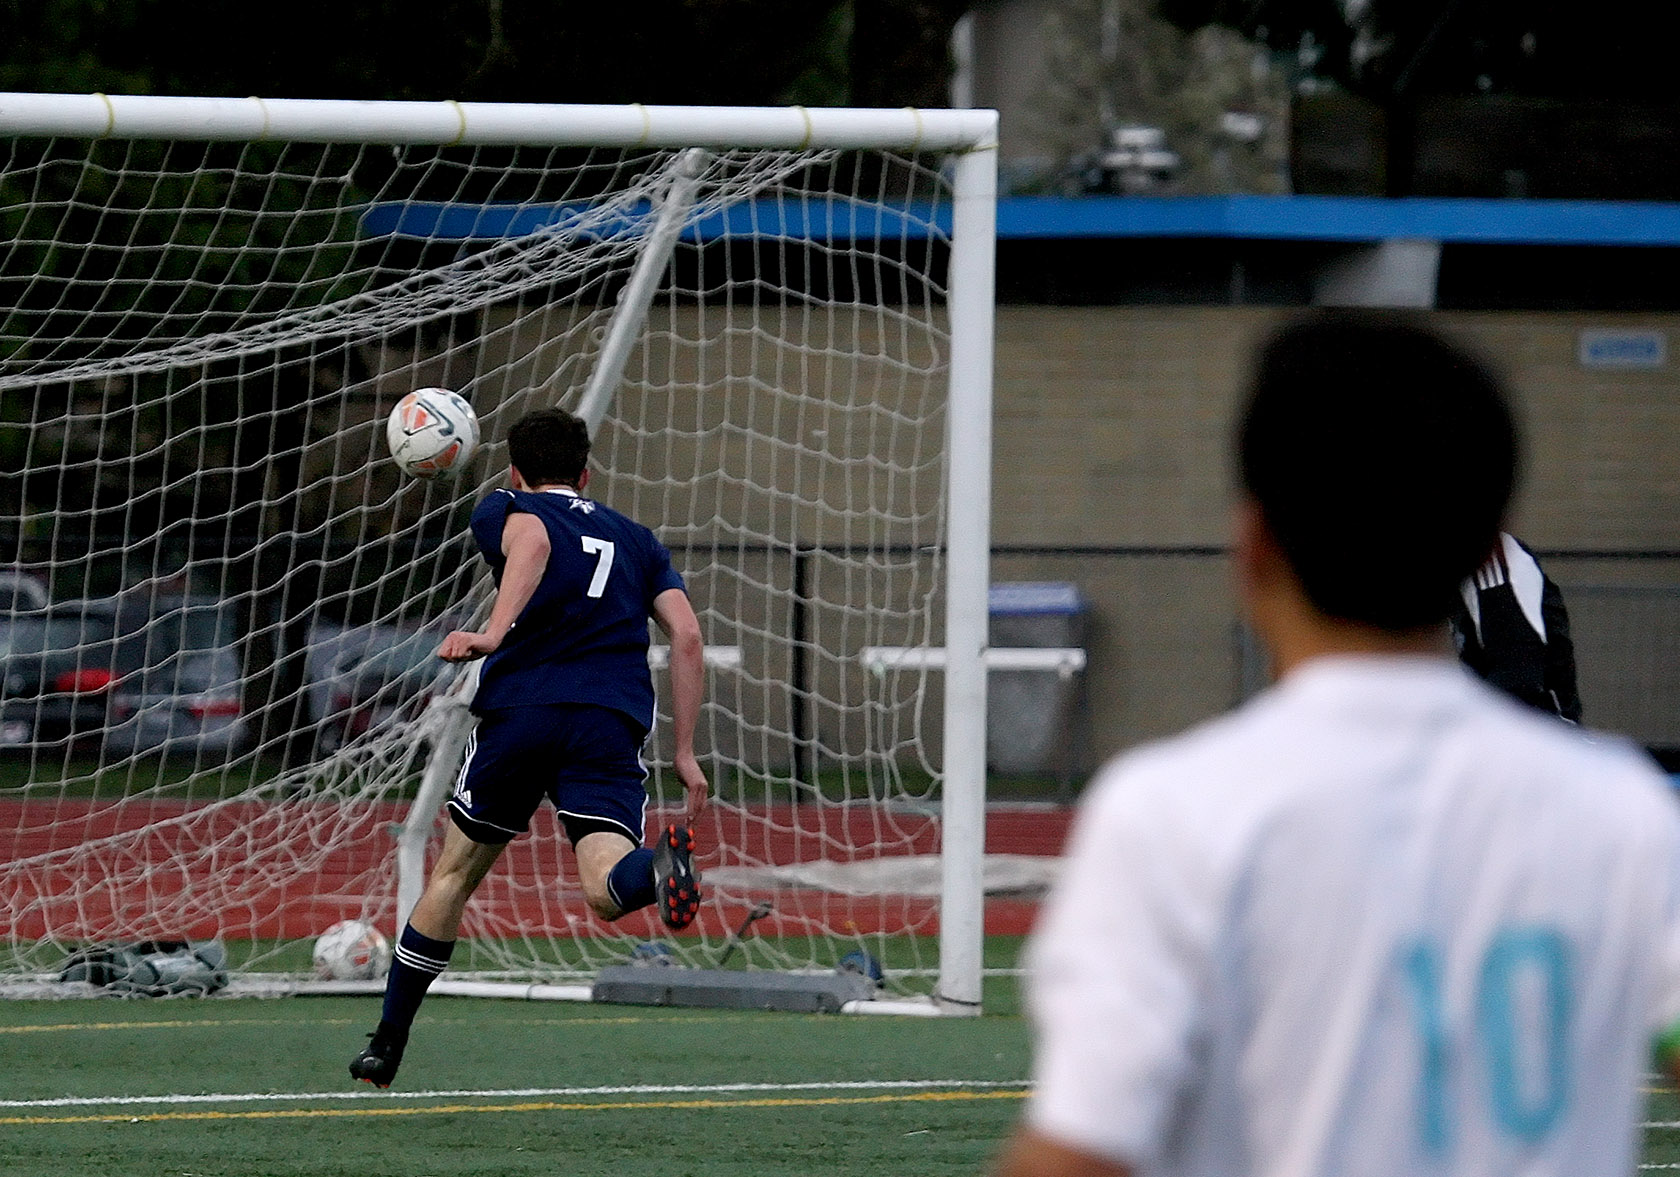 Kaiden Braun of Kennedy Catholic ties the score at 2 as he easily heads the ball into the goal.